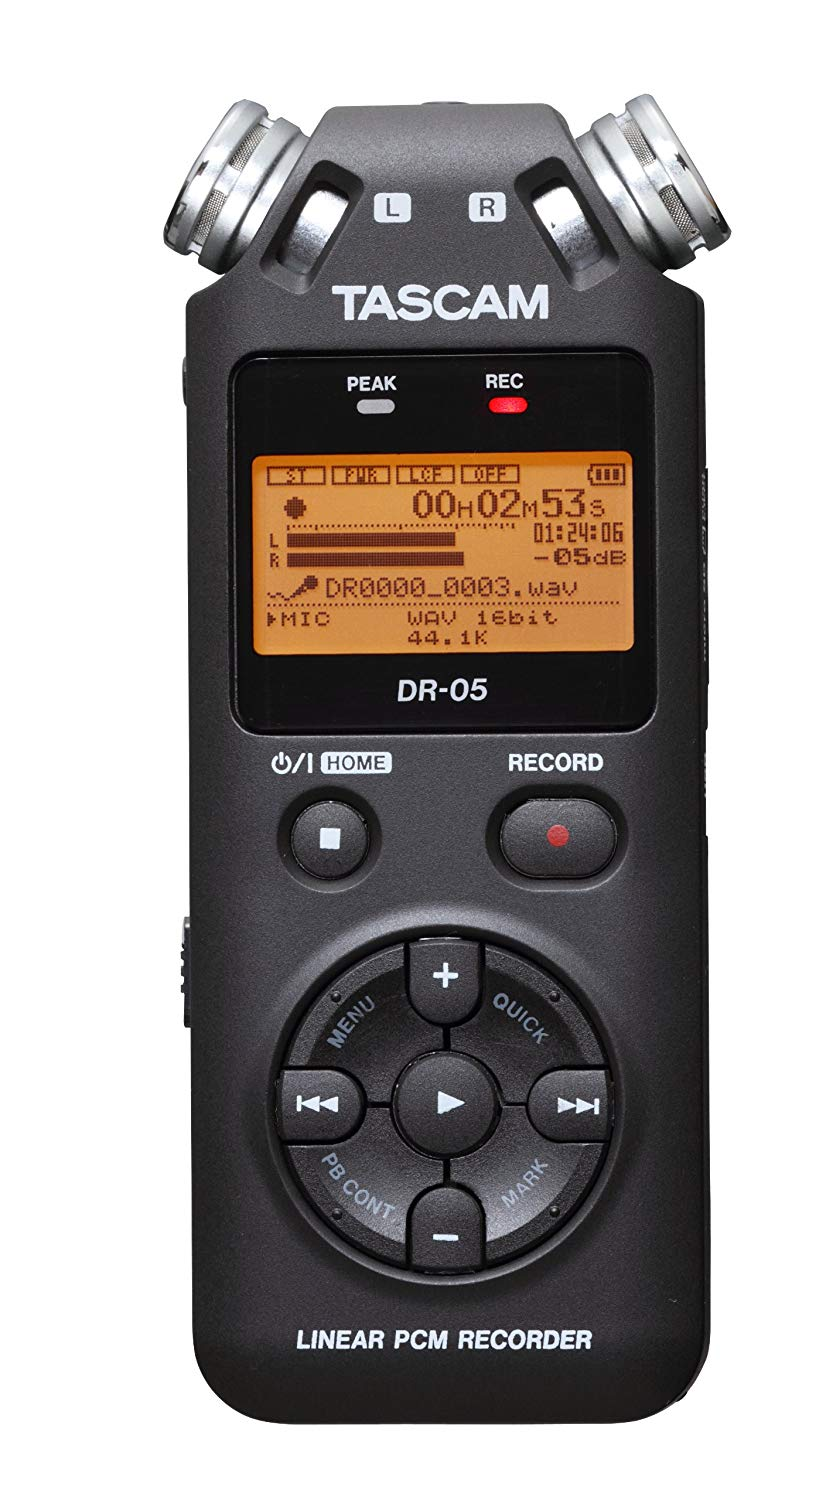 Tascam Portable Studio Recorder